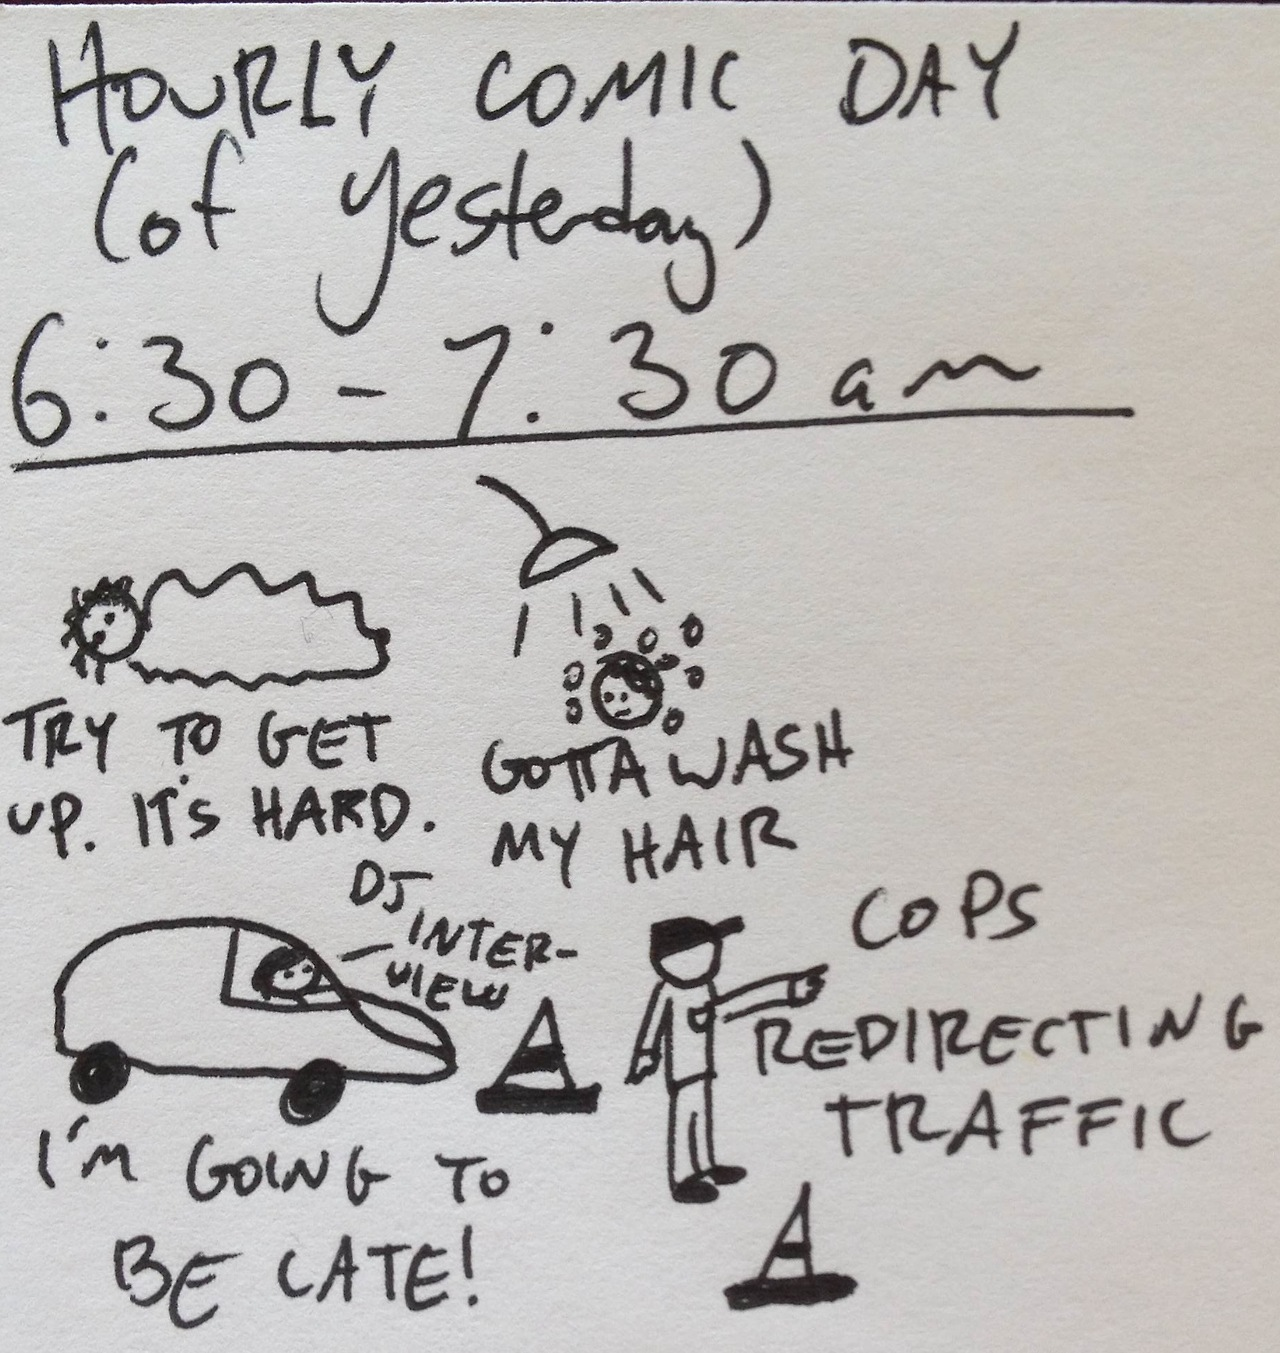 I decided I wanted to do Hourly Comic Day! But my day has been intensely boring today, so I am doing yesterday. And I am starting it in the middle of today. What you gonna do about it?